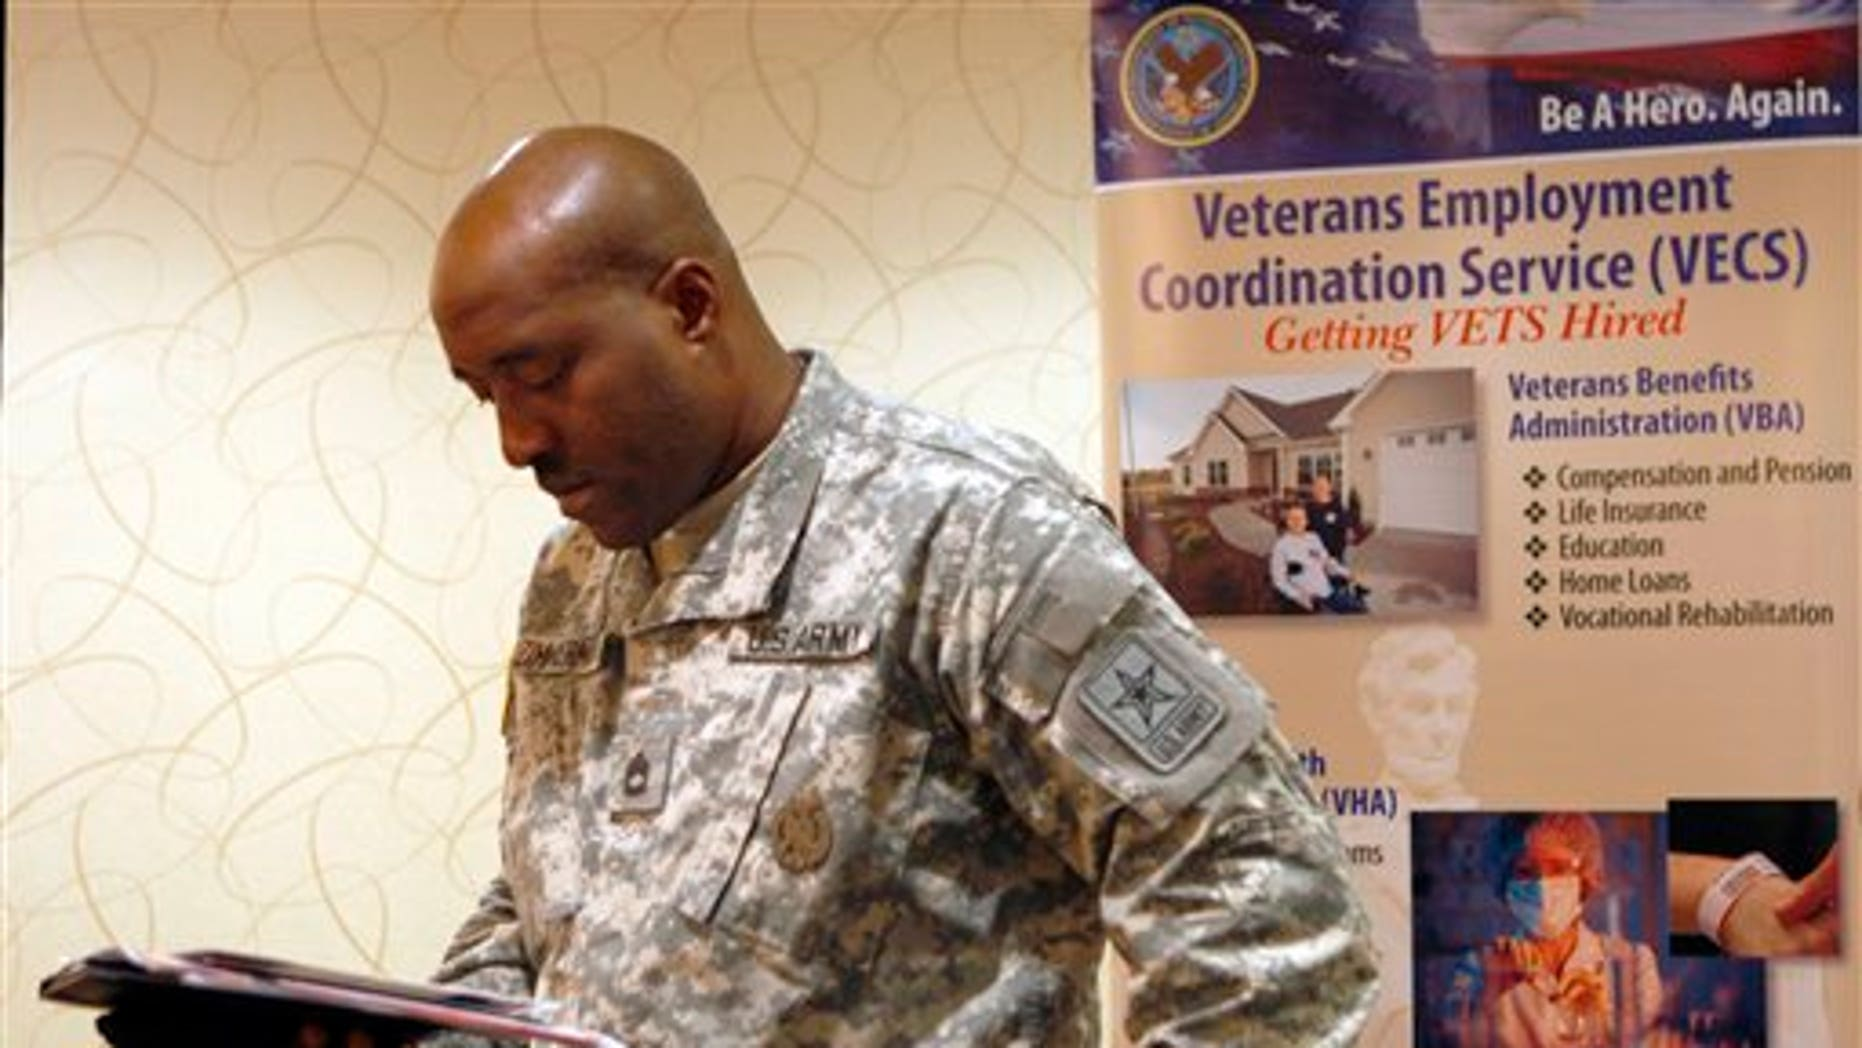 May 3: Army Sgt.1st Class Lonell Zimmerman, of Vineland, N.J., looks over some papers as he attends a job fair aimed at helping military and former military members transition to civilian jobs, in Cherry Hill, N.J.